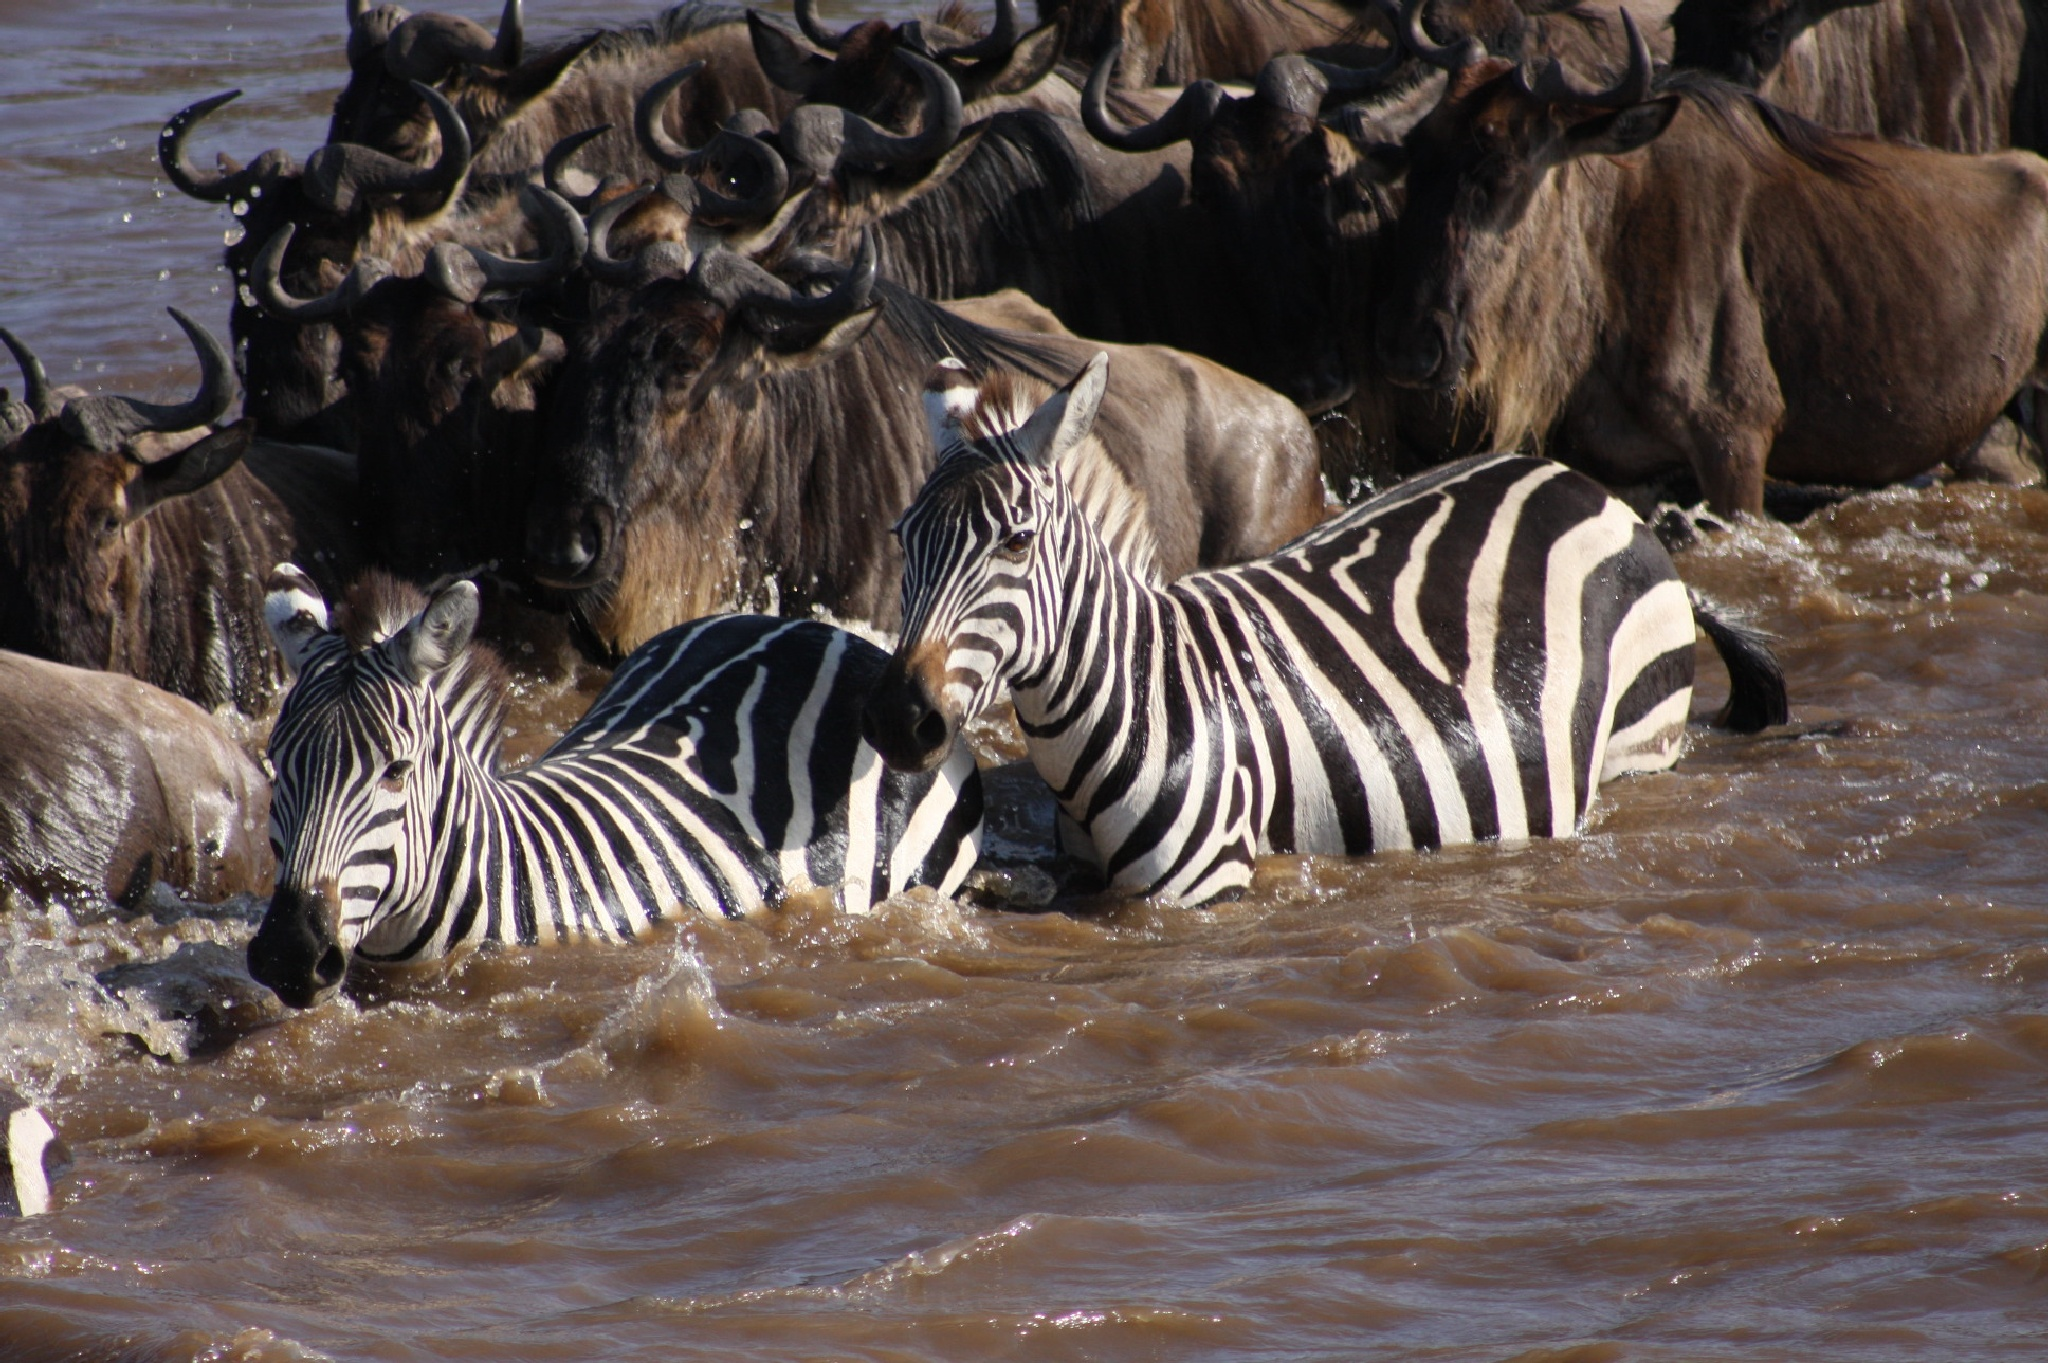 Water Crossing Zebras by Roger Sims